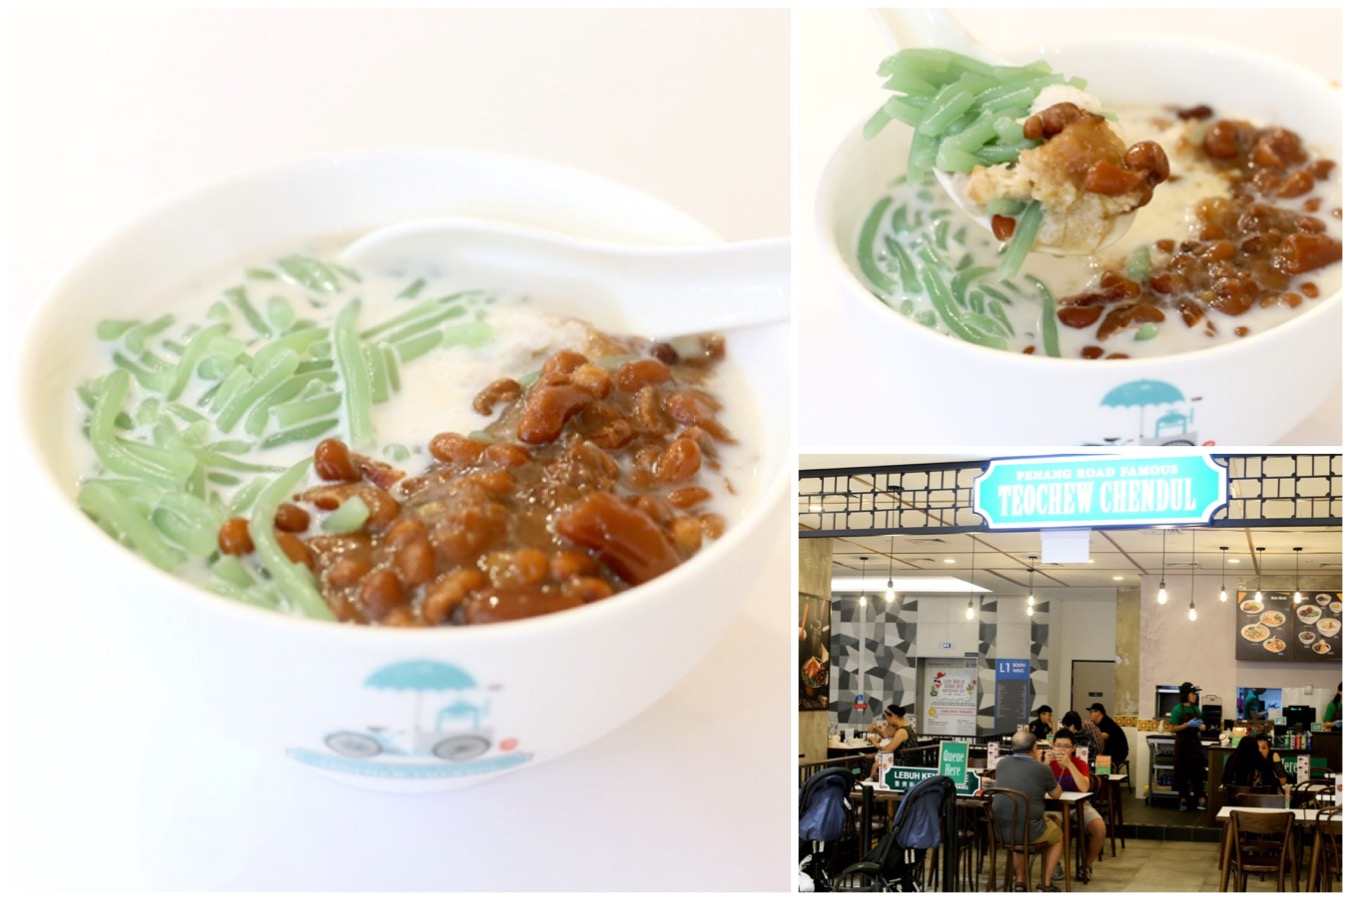 Penang Road Famous Teochew Chendul Singapore - Popular Chendol Shop Opens At Northpoint City, Yishun